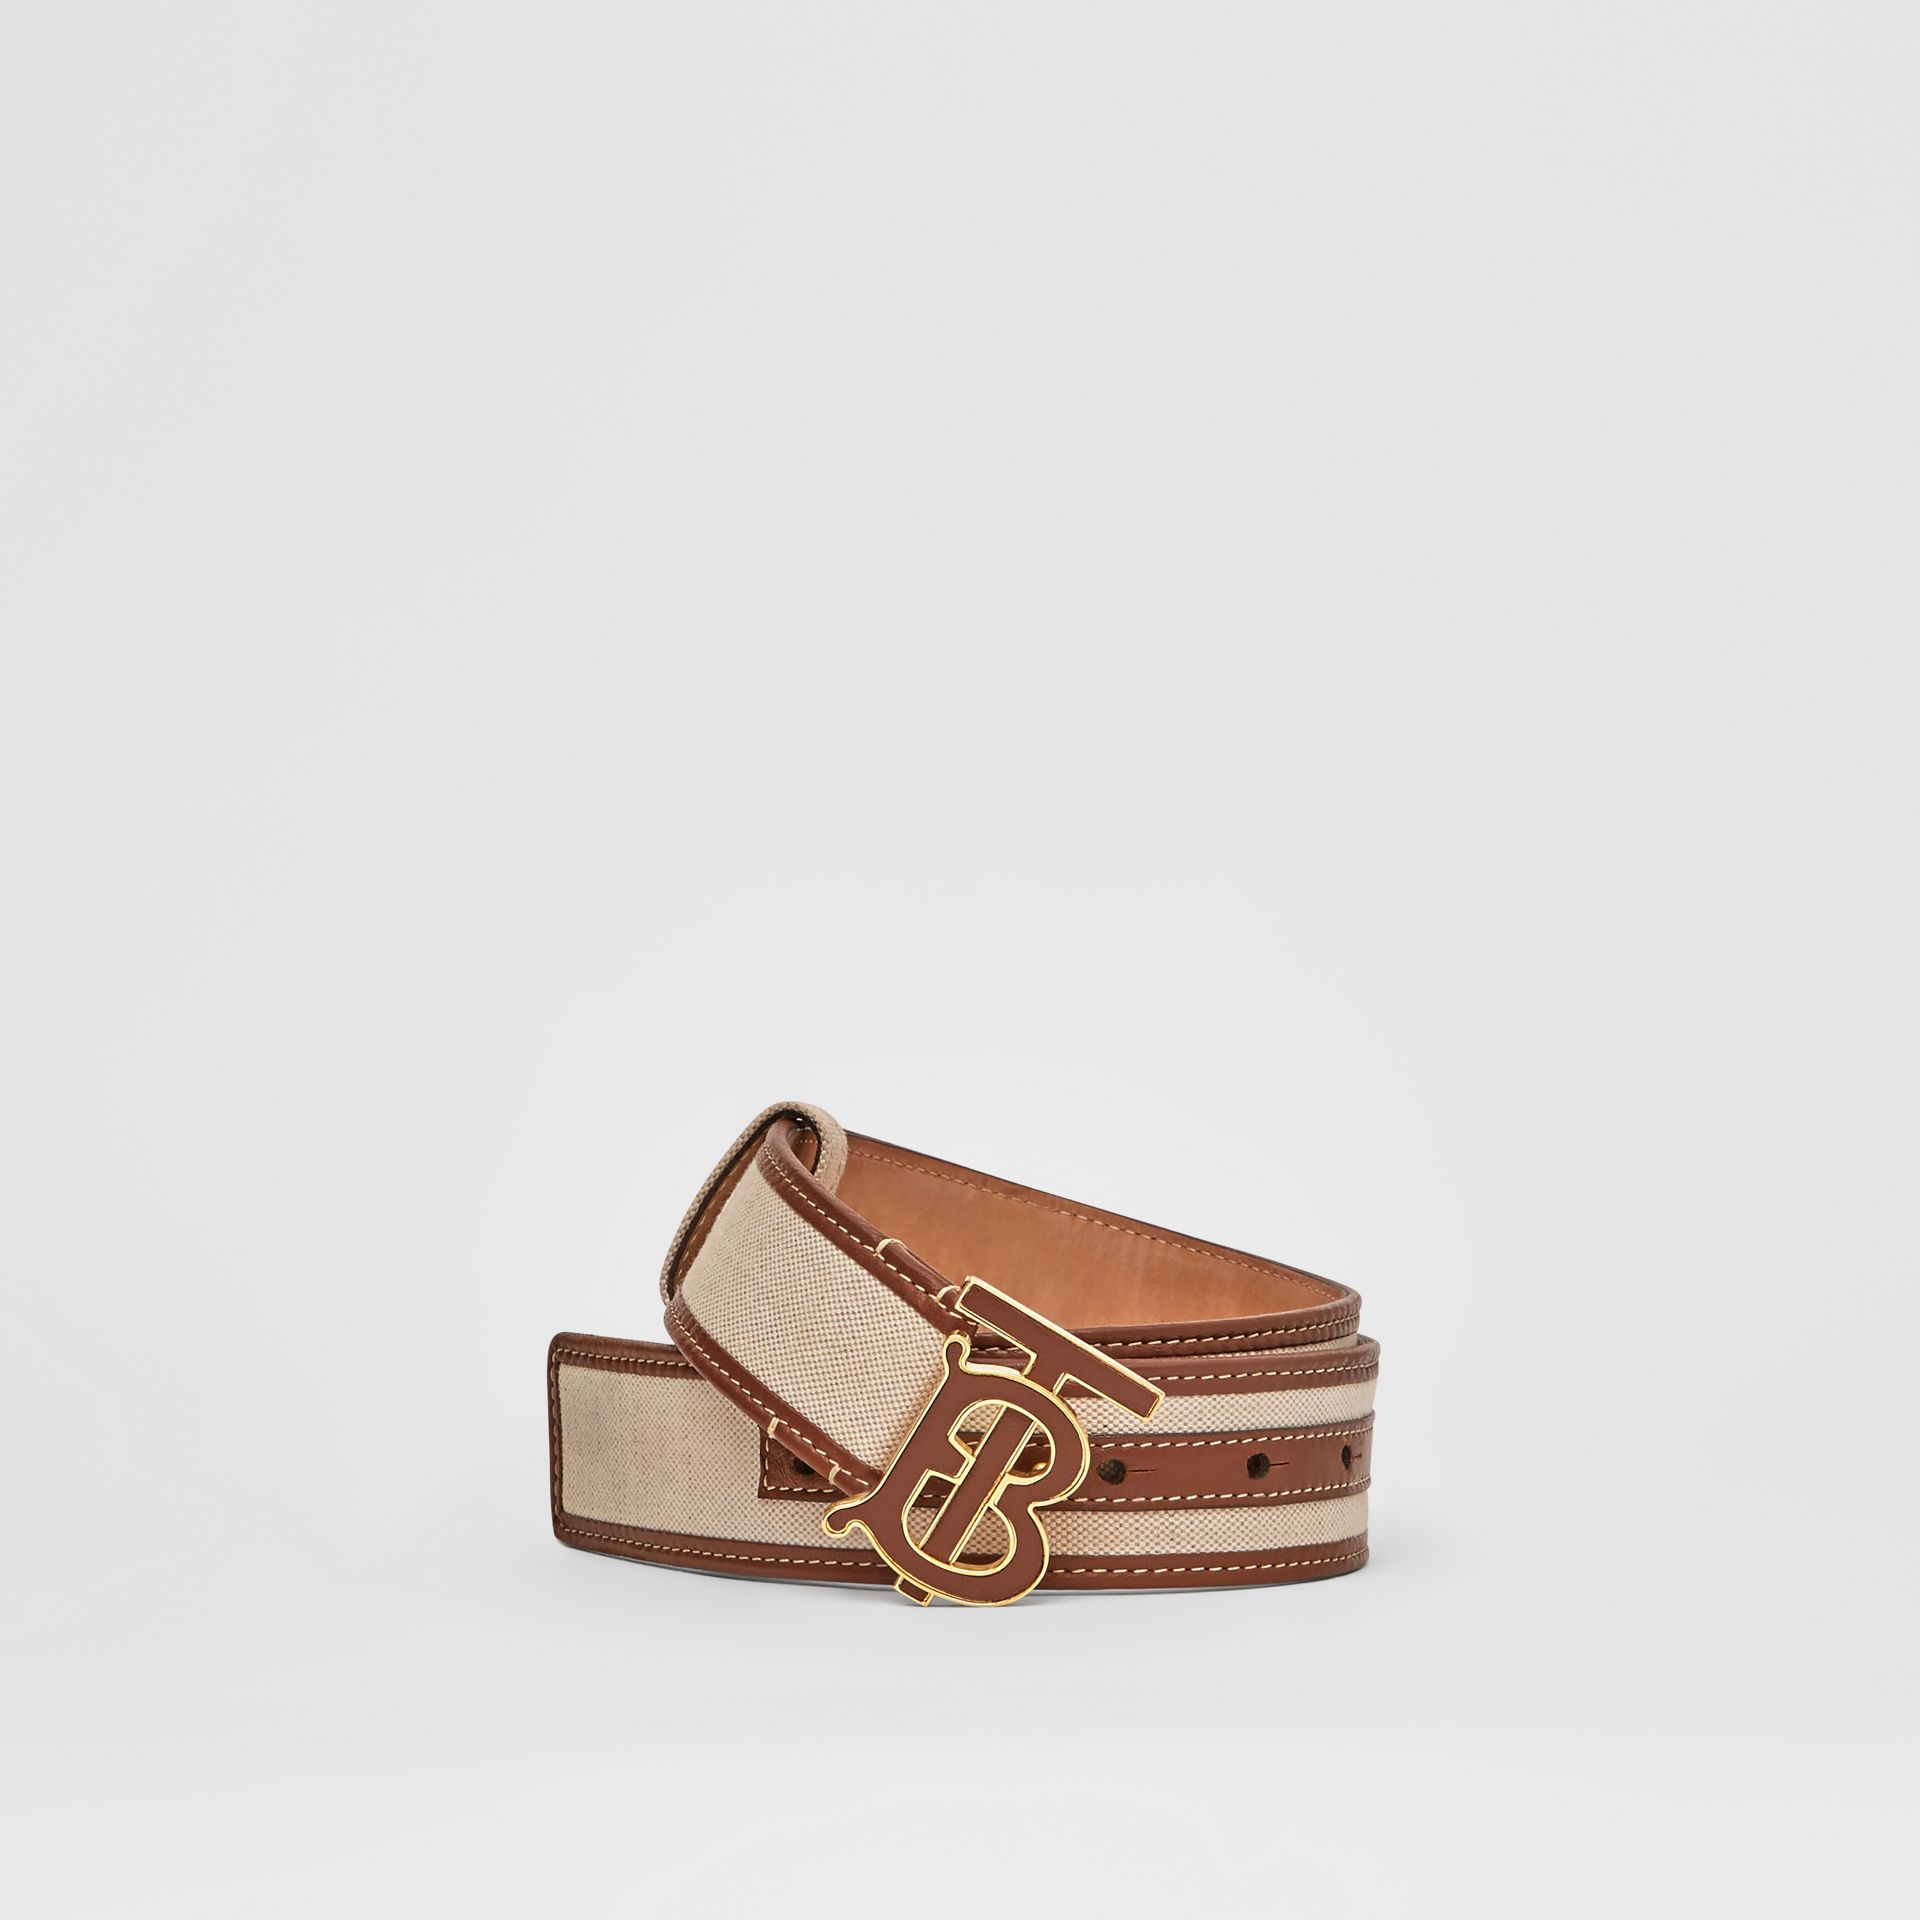 Monogram Motif Canvas and Leather Belt in Natural - Women | Burberry United Kingdom - gallery image 0